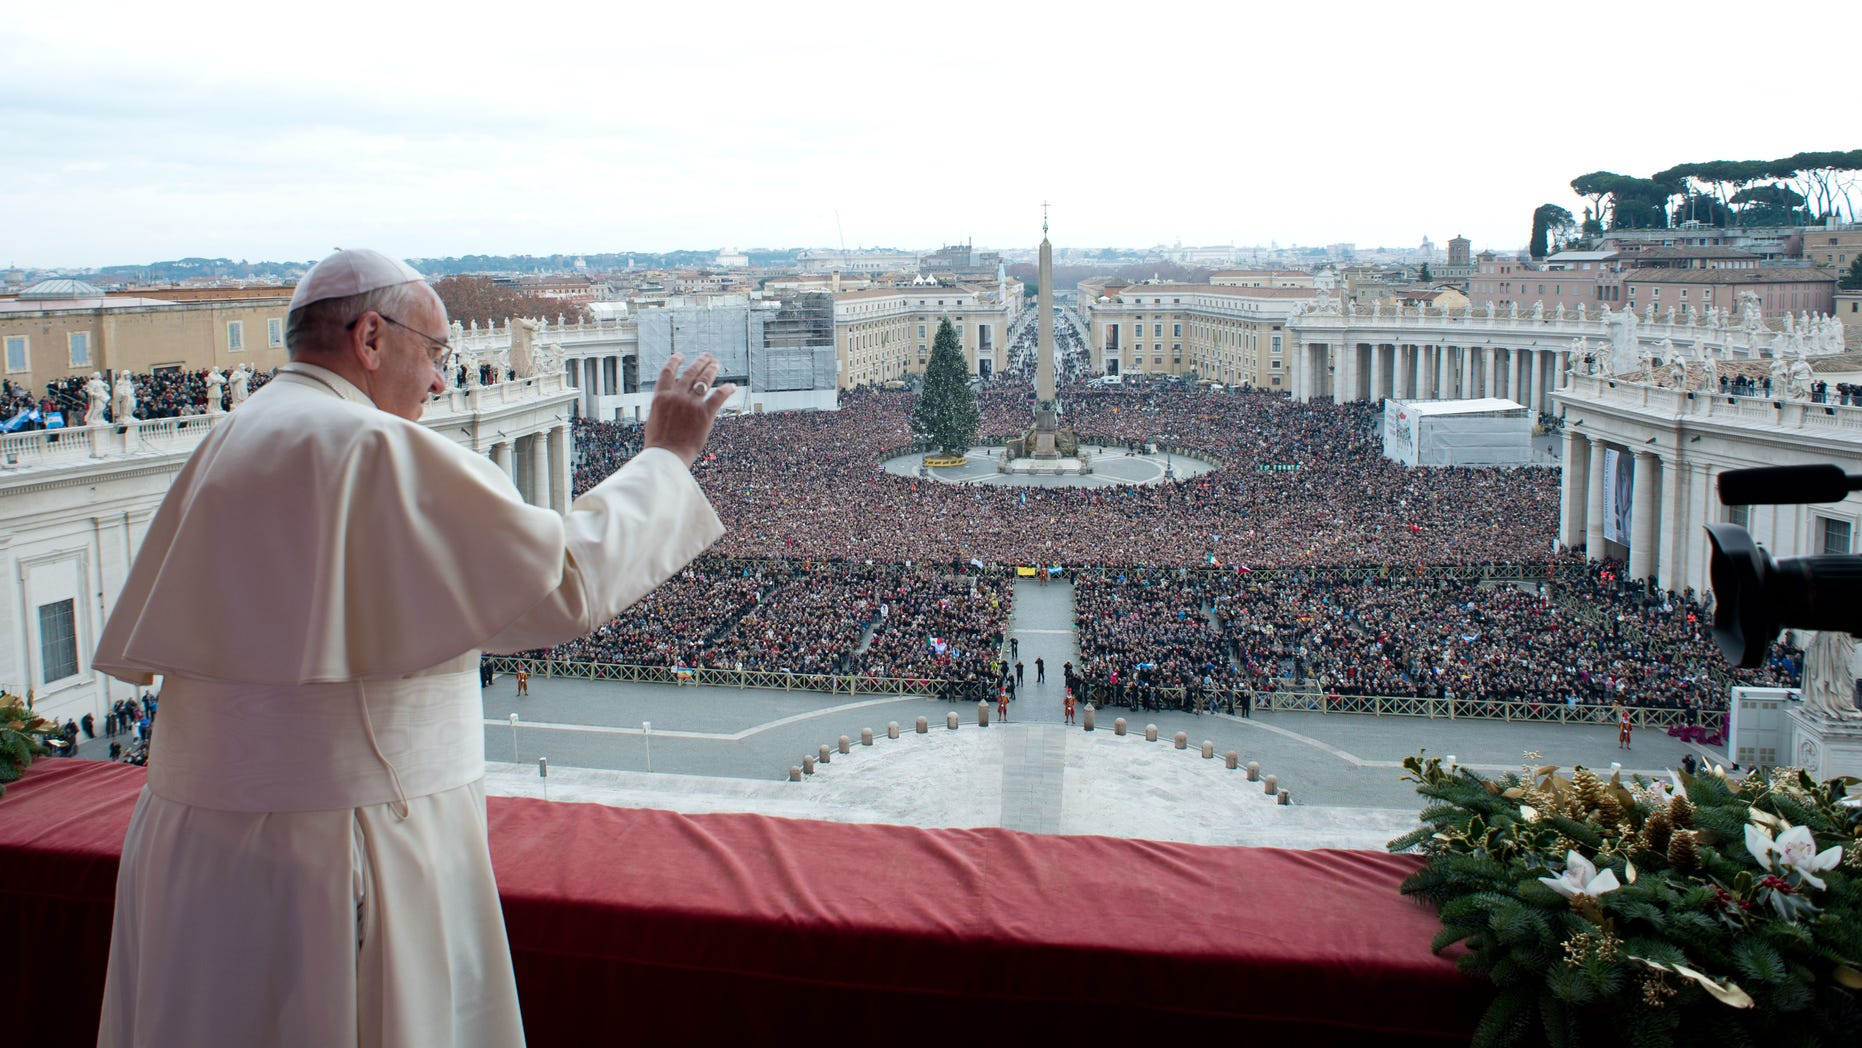 """Dec. 25, 2013: In this picture provided by the Vatican newspaper L'Osservatore Romano, Pope Francis delivers his """"Urbi et Orbi"""" (to the City and to the World) message from the central balcony of St. Peter's Basilica at the Vatican."""